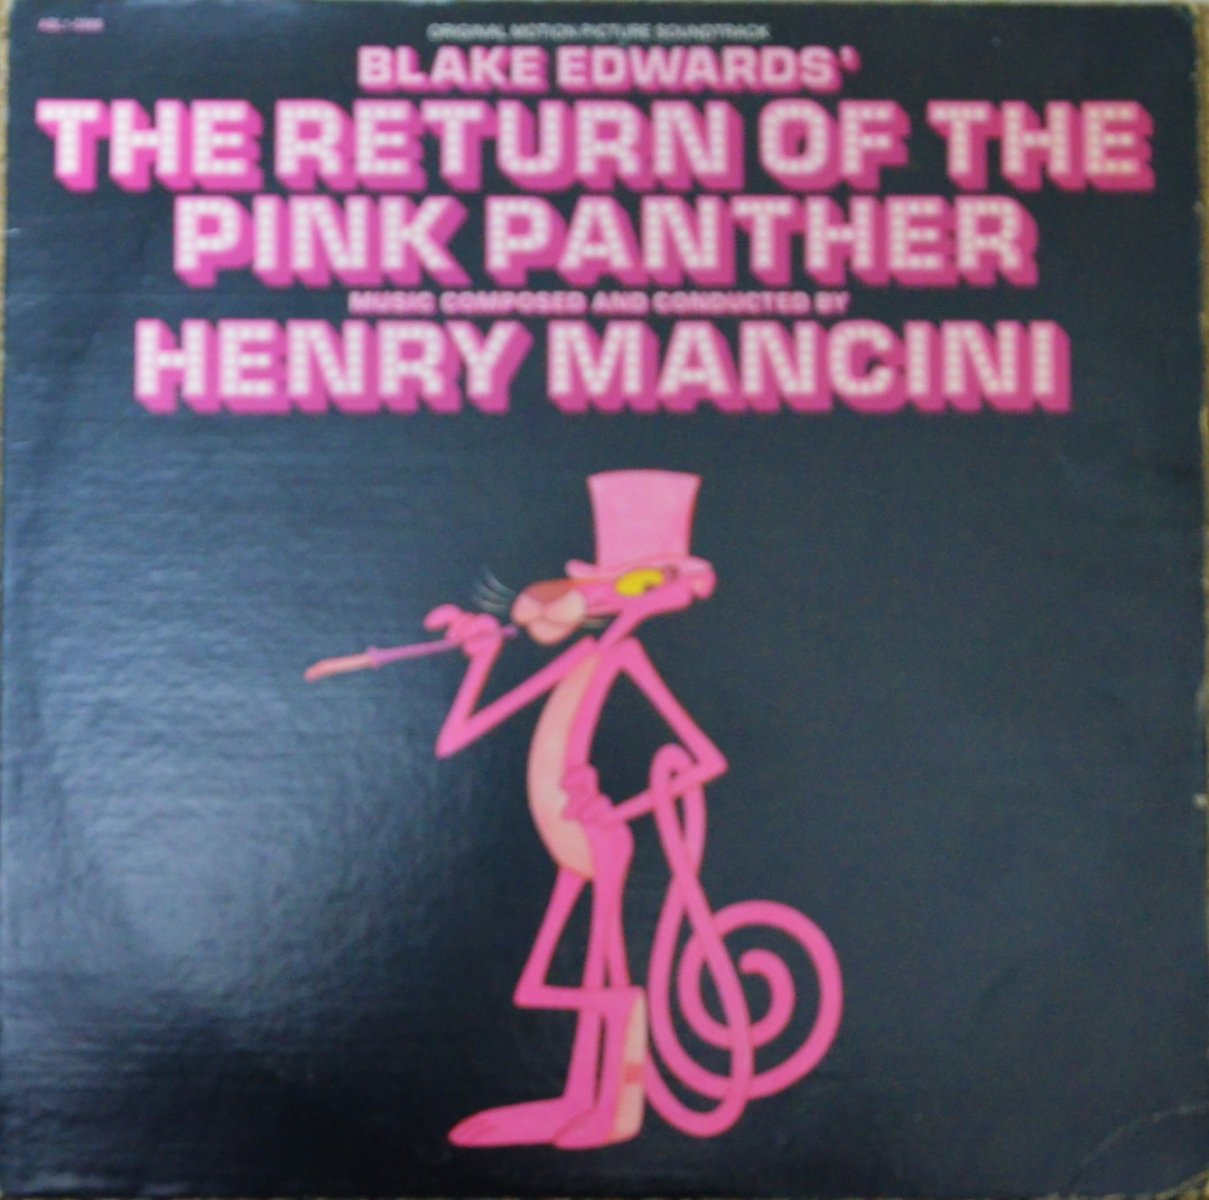 O.S.T. (HENRY MANCINI) ‎/ BLAKE EDWARDS' THE RETURN OF THE PINK PANTHER (LP)